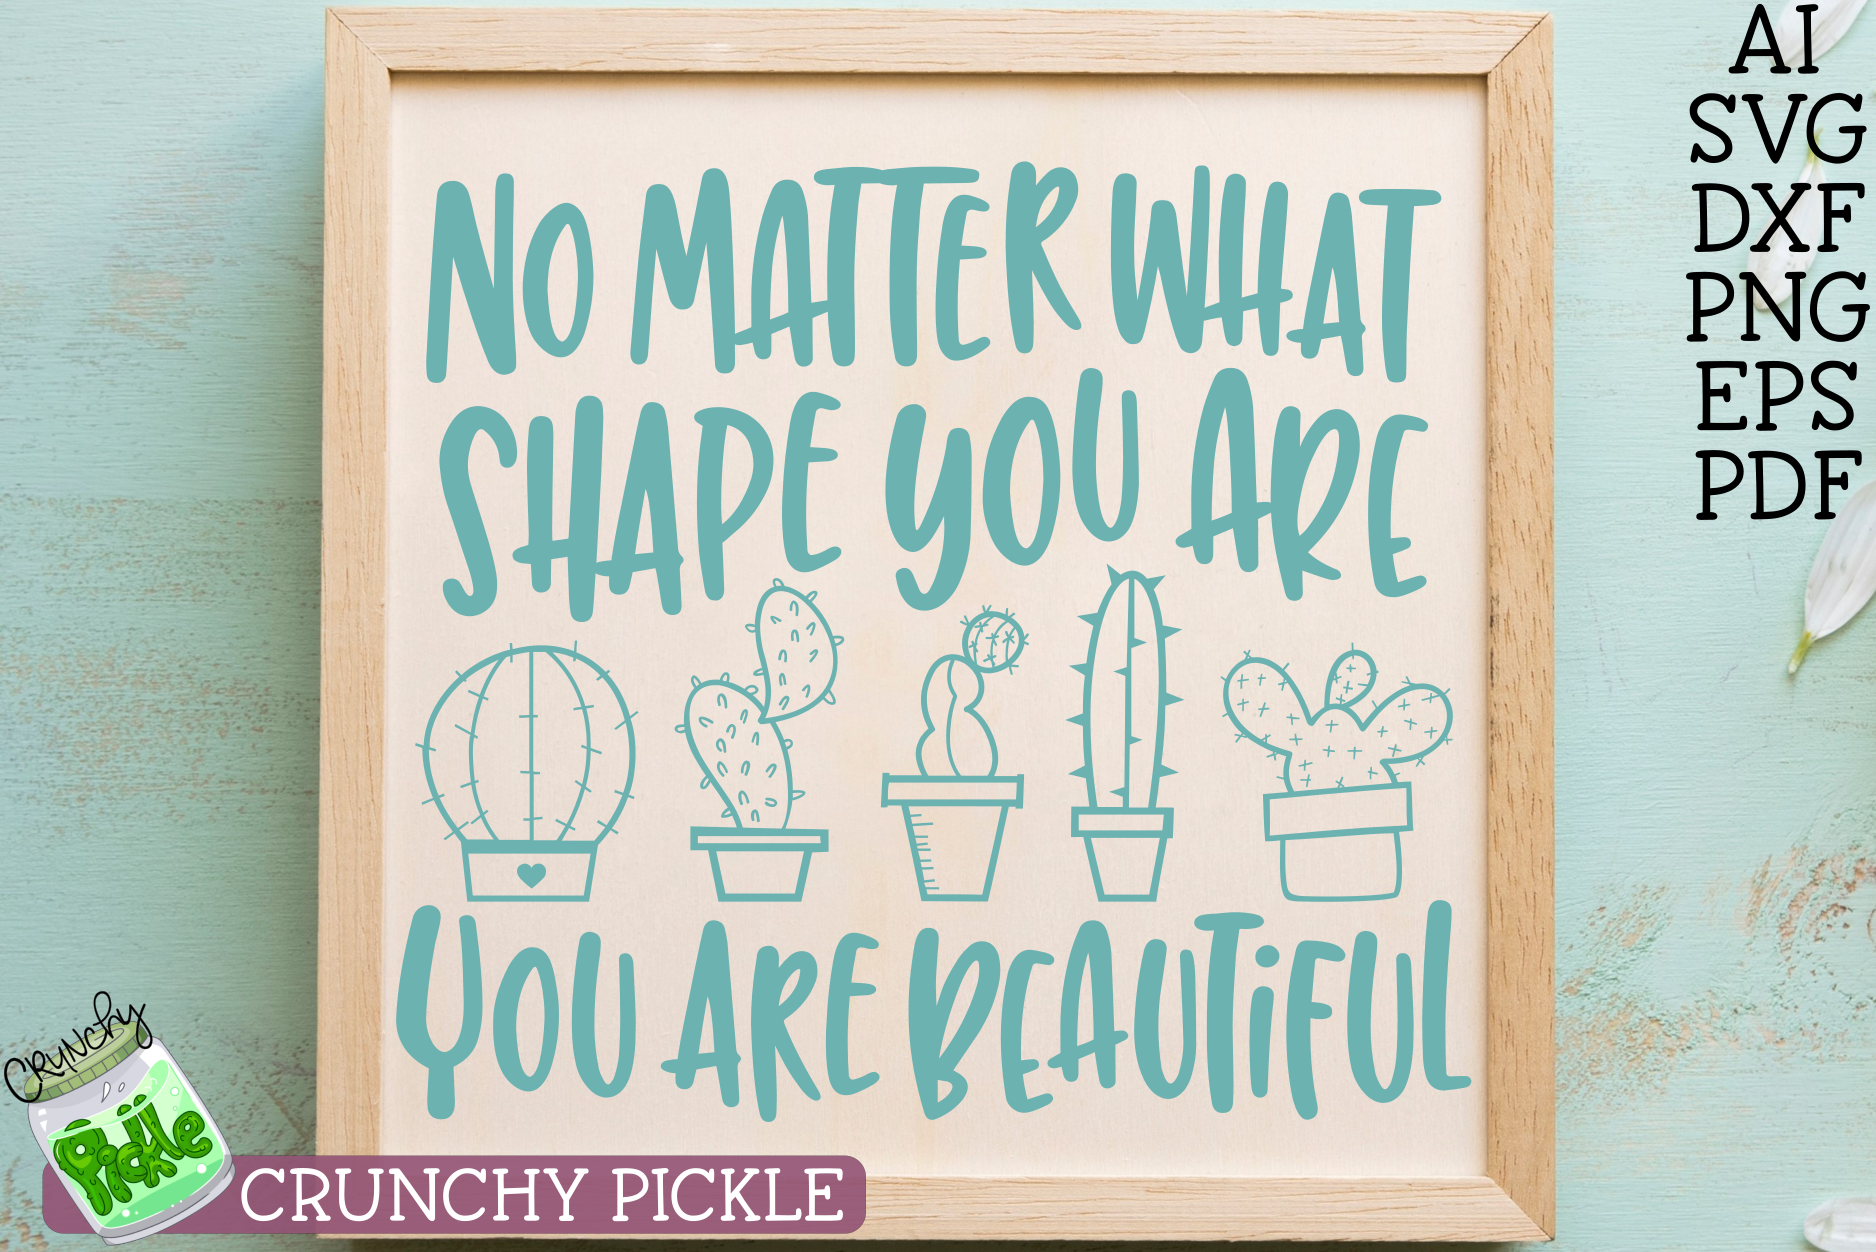 Download Free Beautiful Shape Cactus Svg File Graphic By Crunchy Pickle Creative Fabrica for Cricut Explore, Silhouette and other cutting machines.